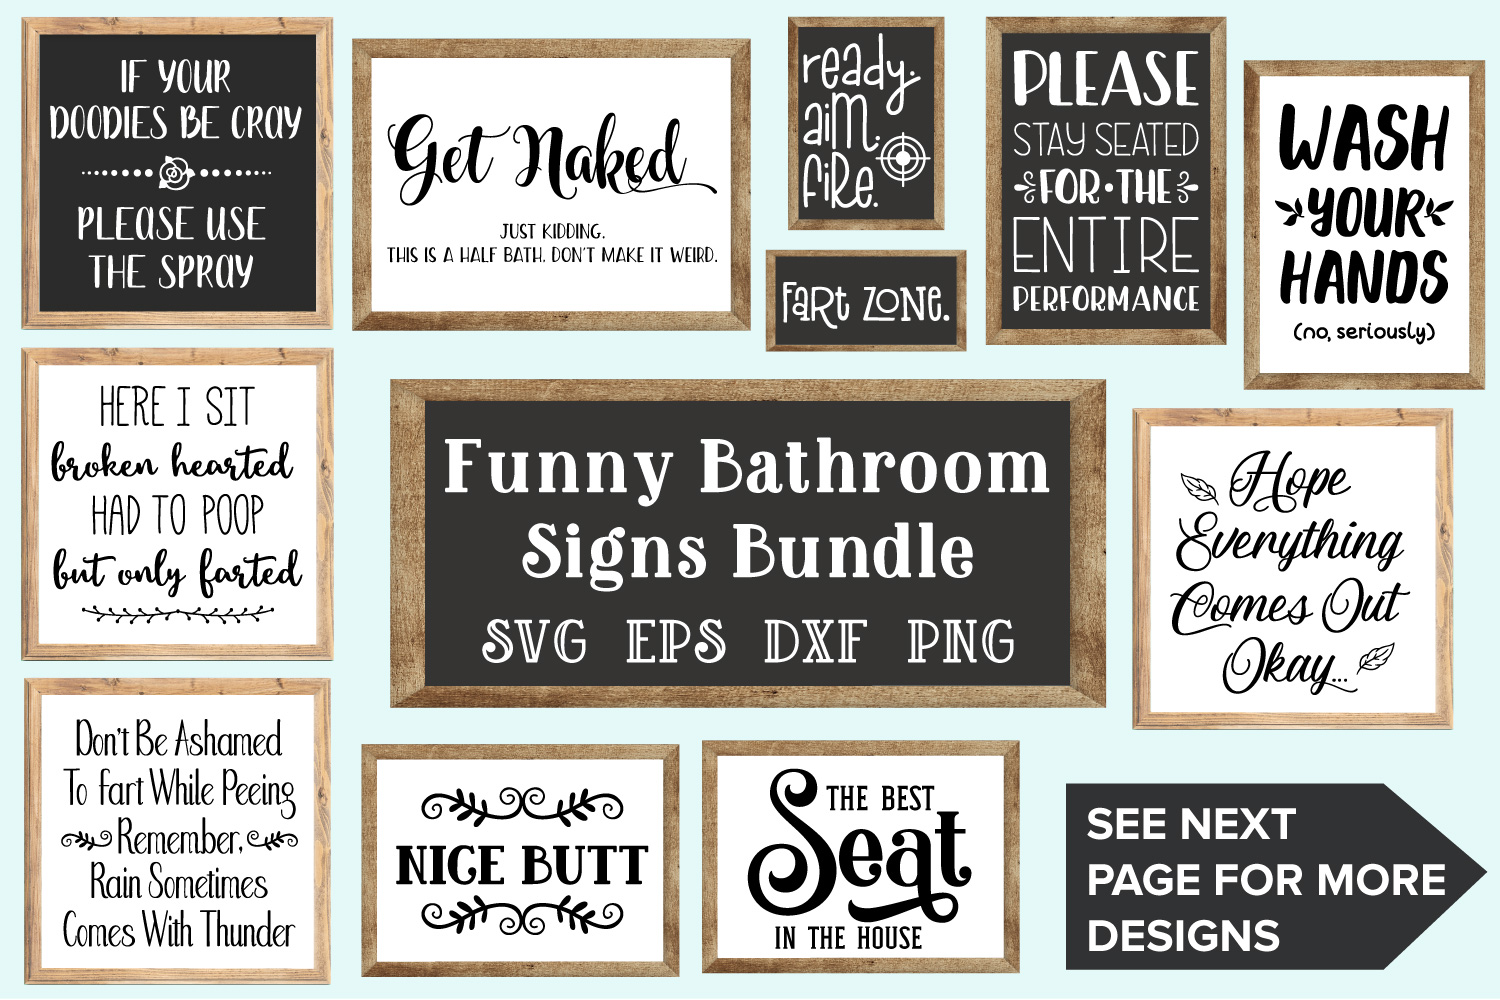 Bathroom Signs Bundle - SVG, EPS, DXF, PNG (112137) | SVGs ...